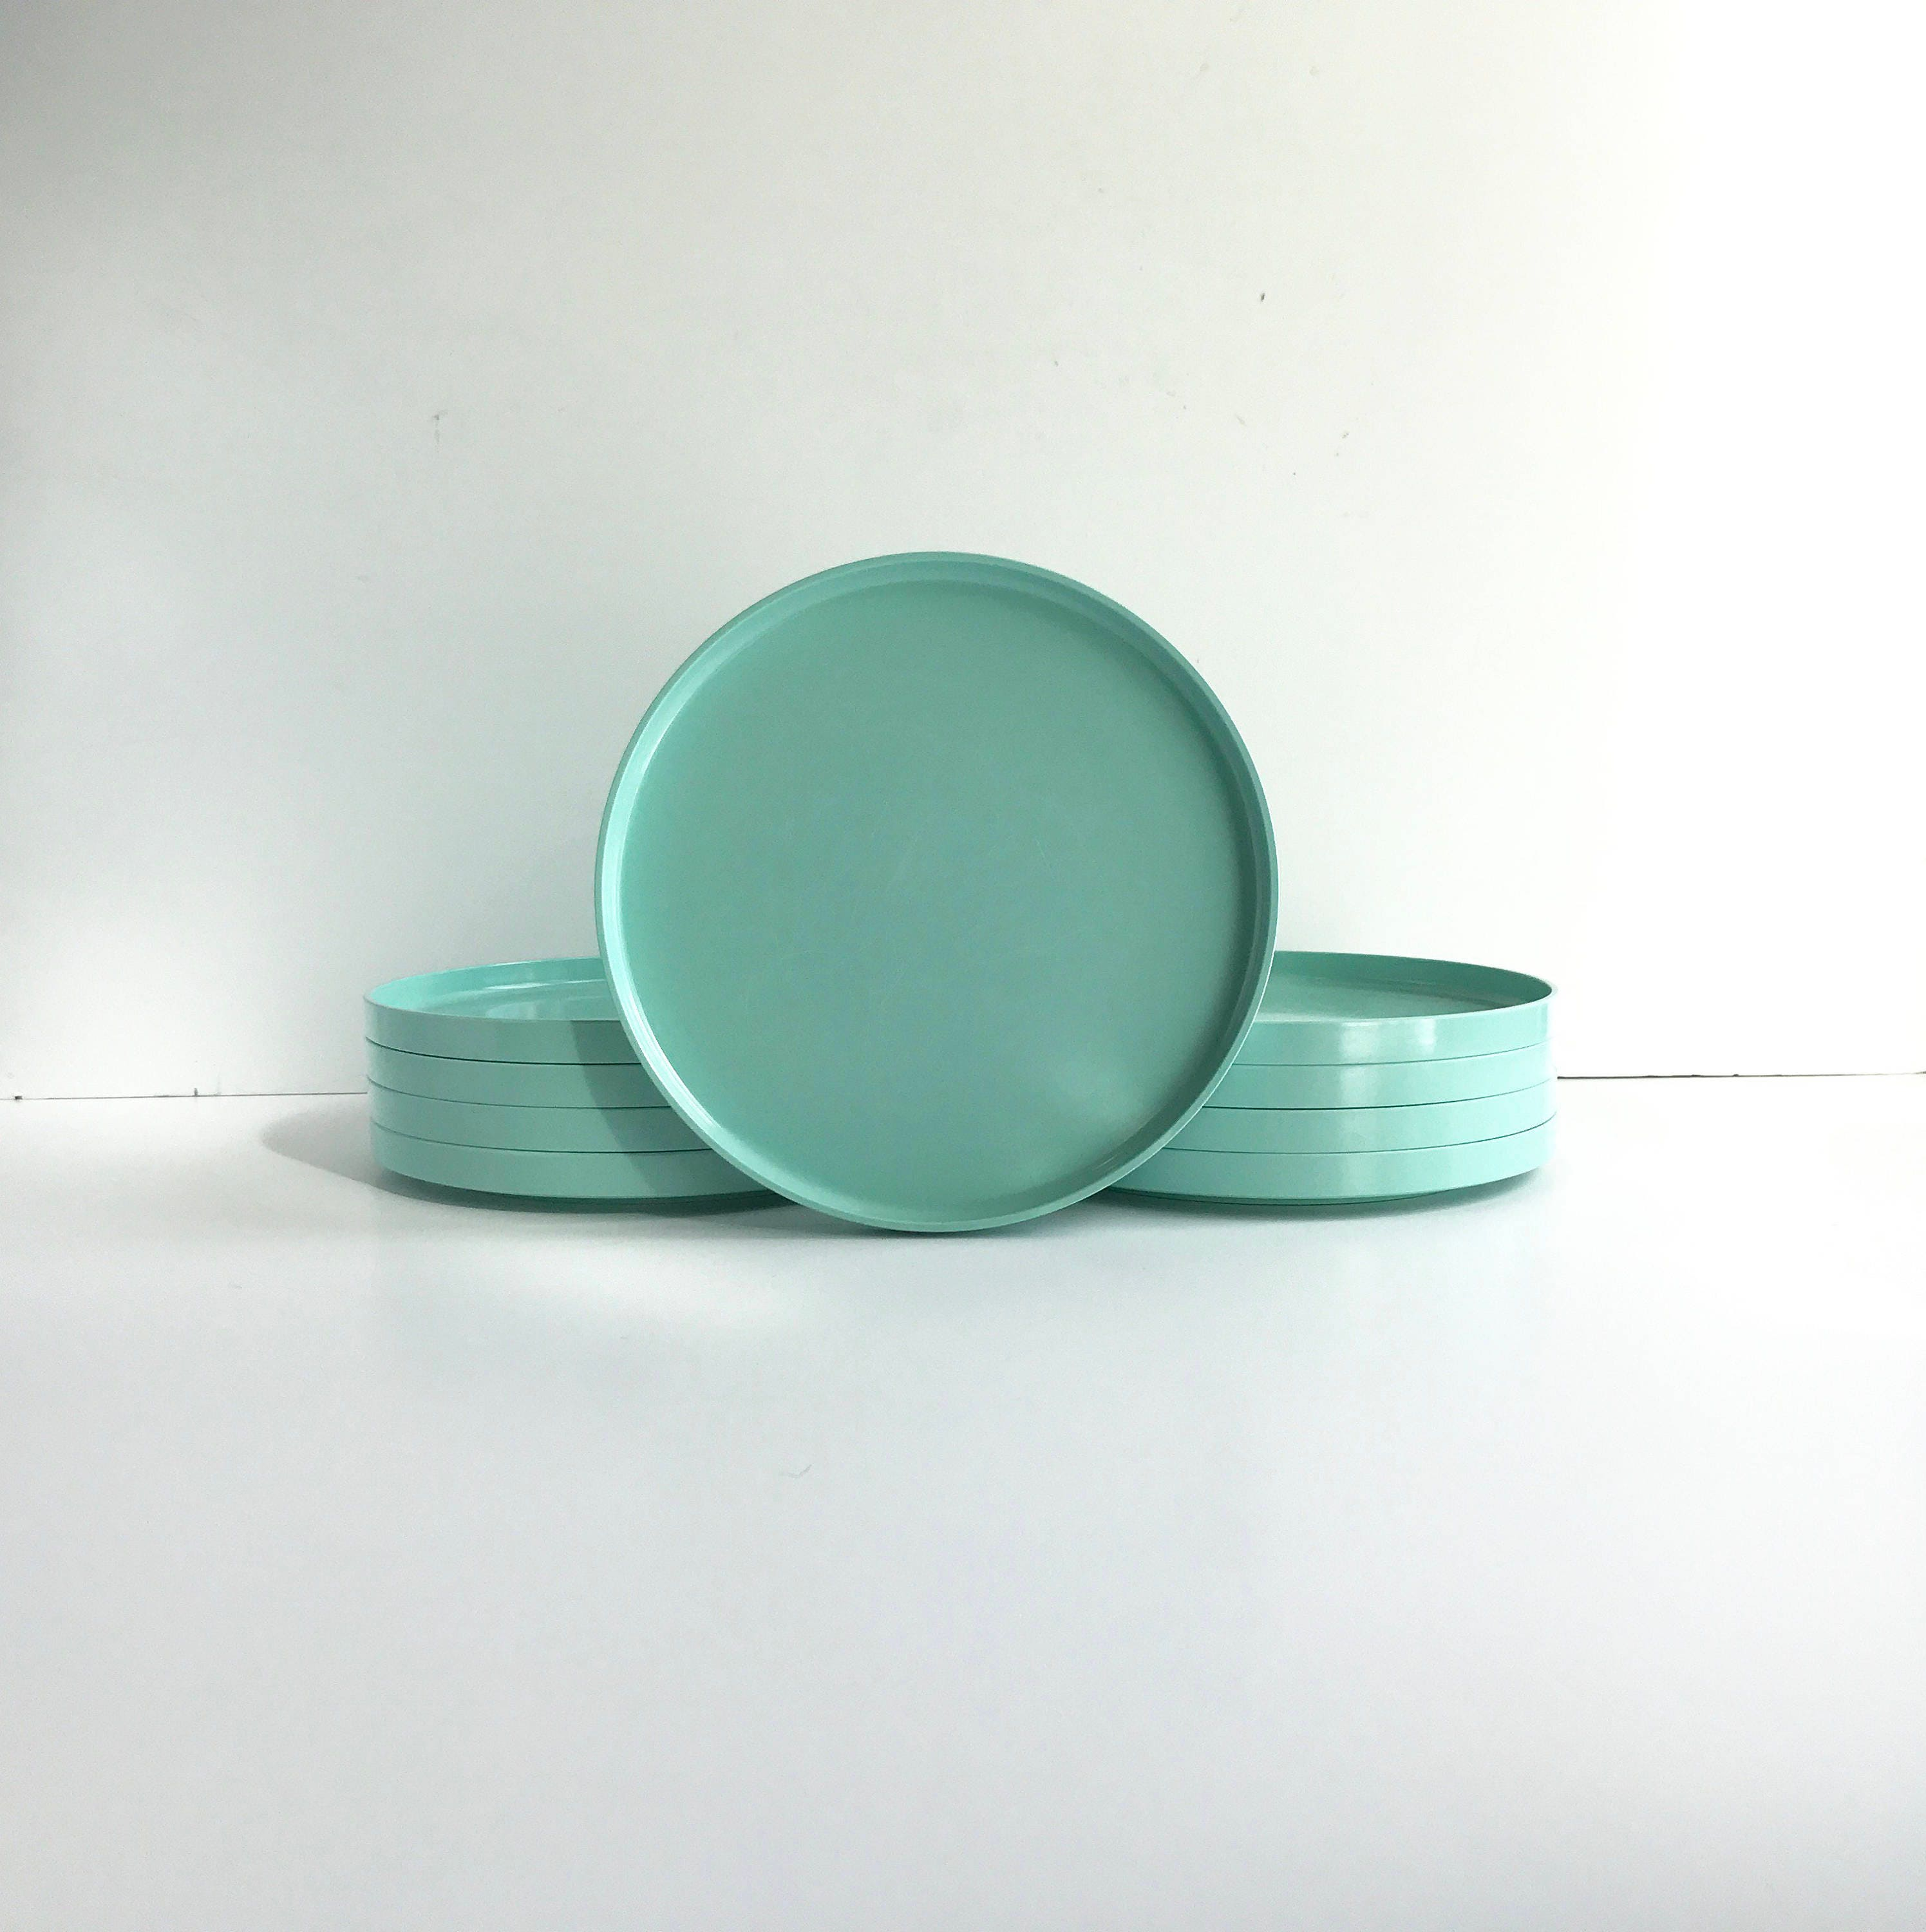 Mid Century Heller Melamine Dinner Plates Vintage Teal Heller Plates by Massimo Vignelli 8 Available : teal dinner plates - pezcame.com